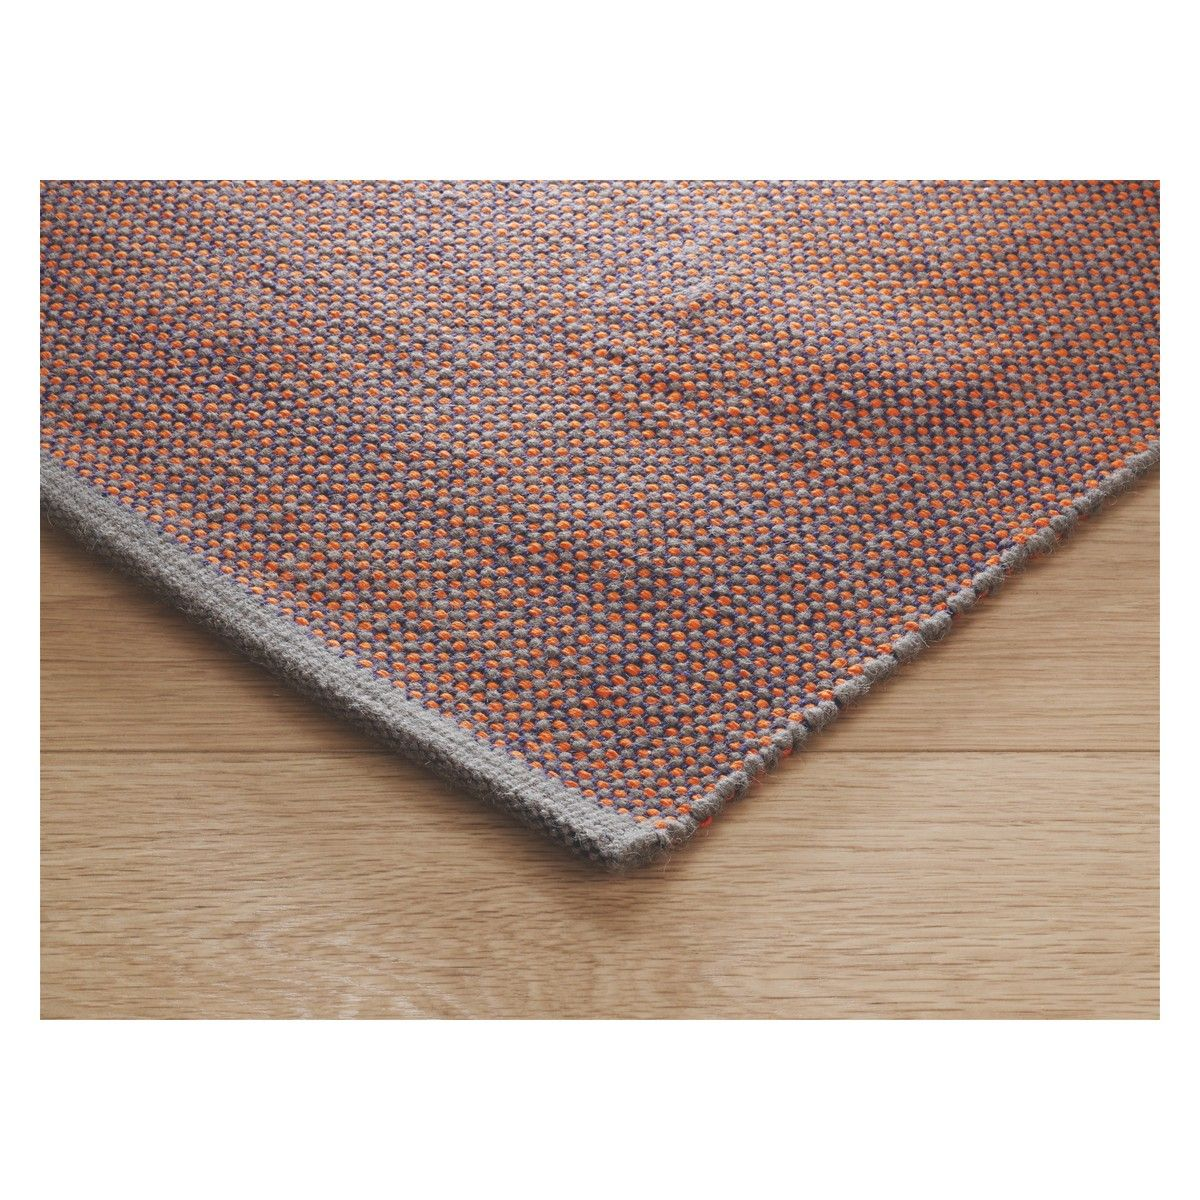 Latham Small Orange Cotton Rug 120 X 180cm Cotton Rug Rugs Latham